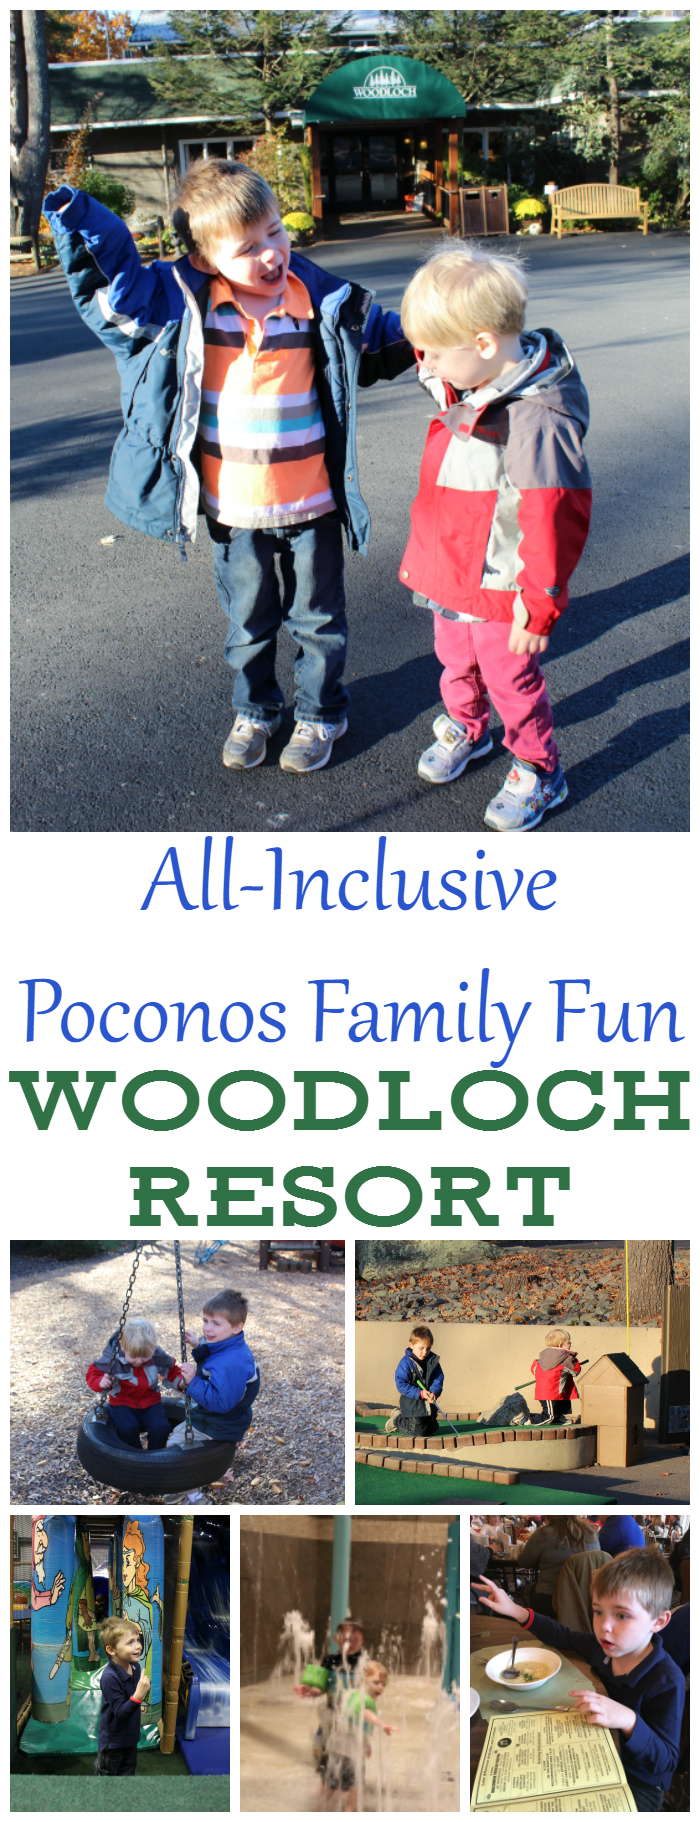 All-Inclusive Poconos Family Fun at Woodloch Resort!